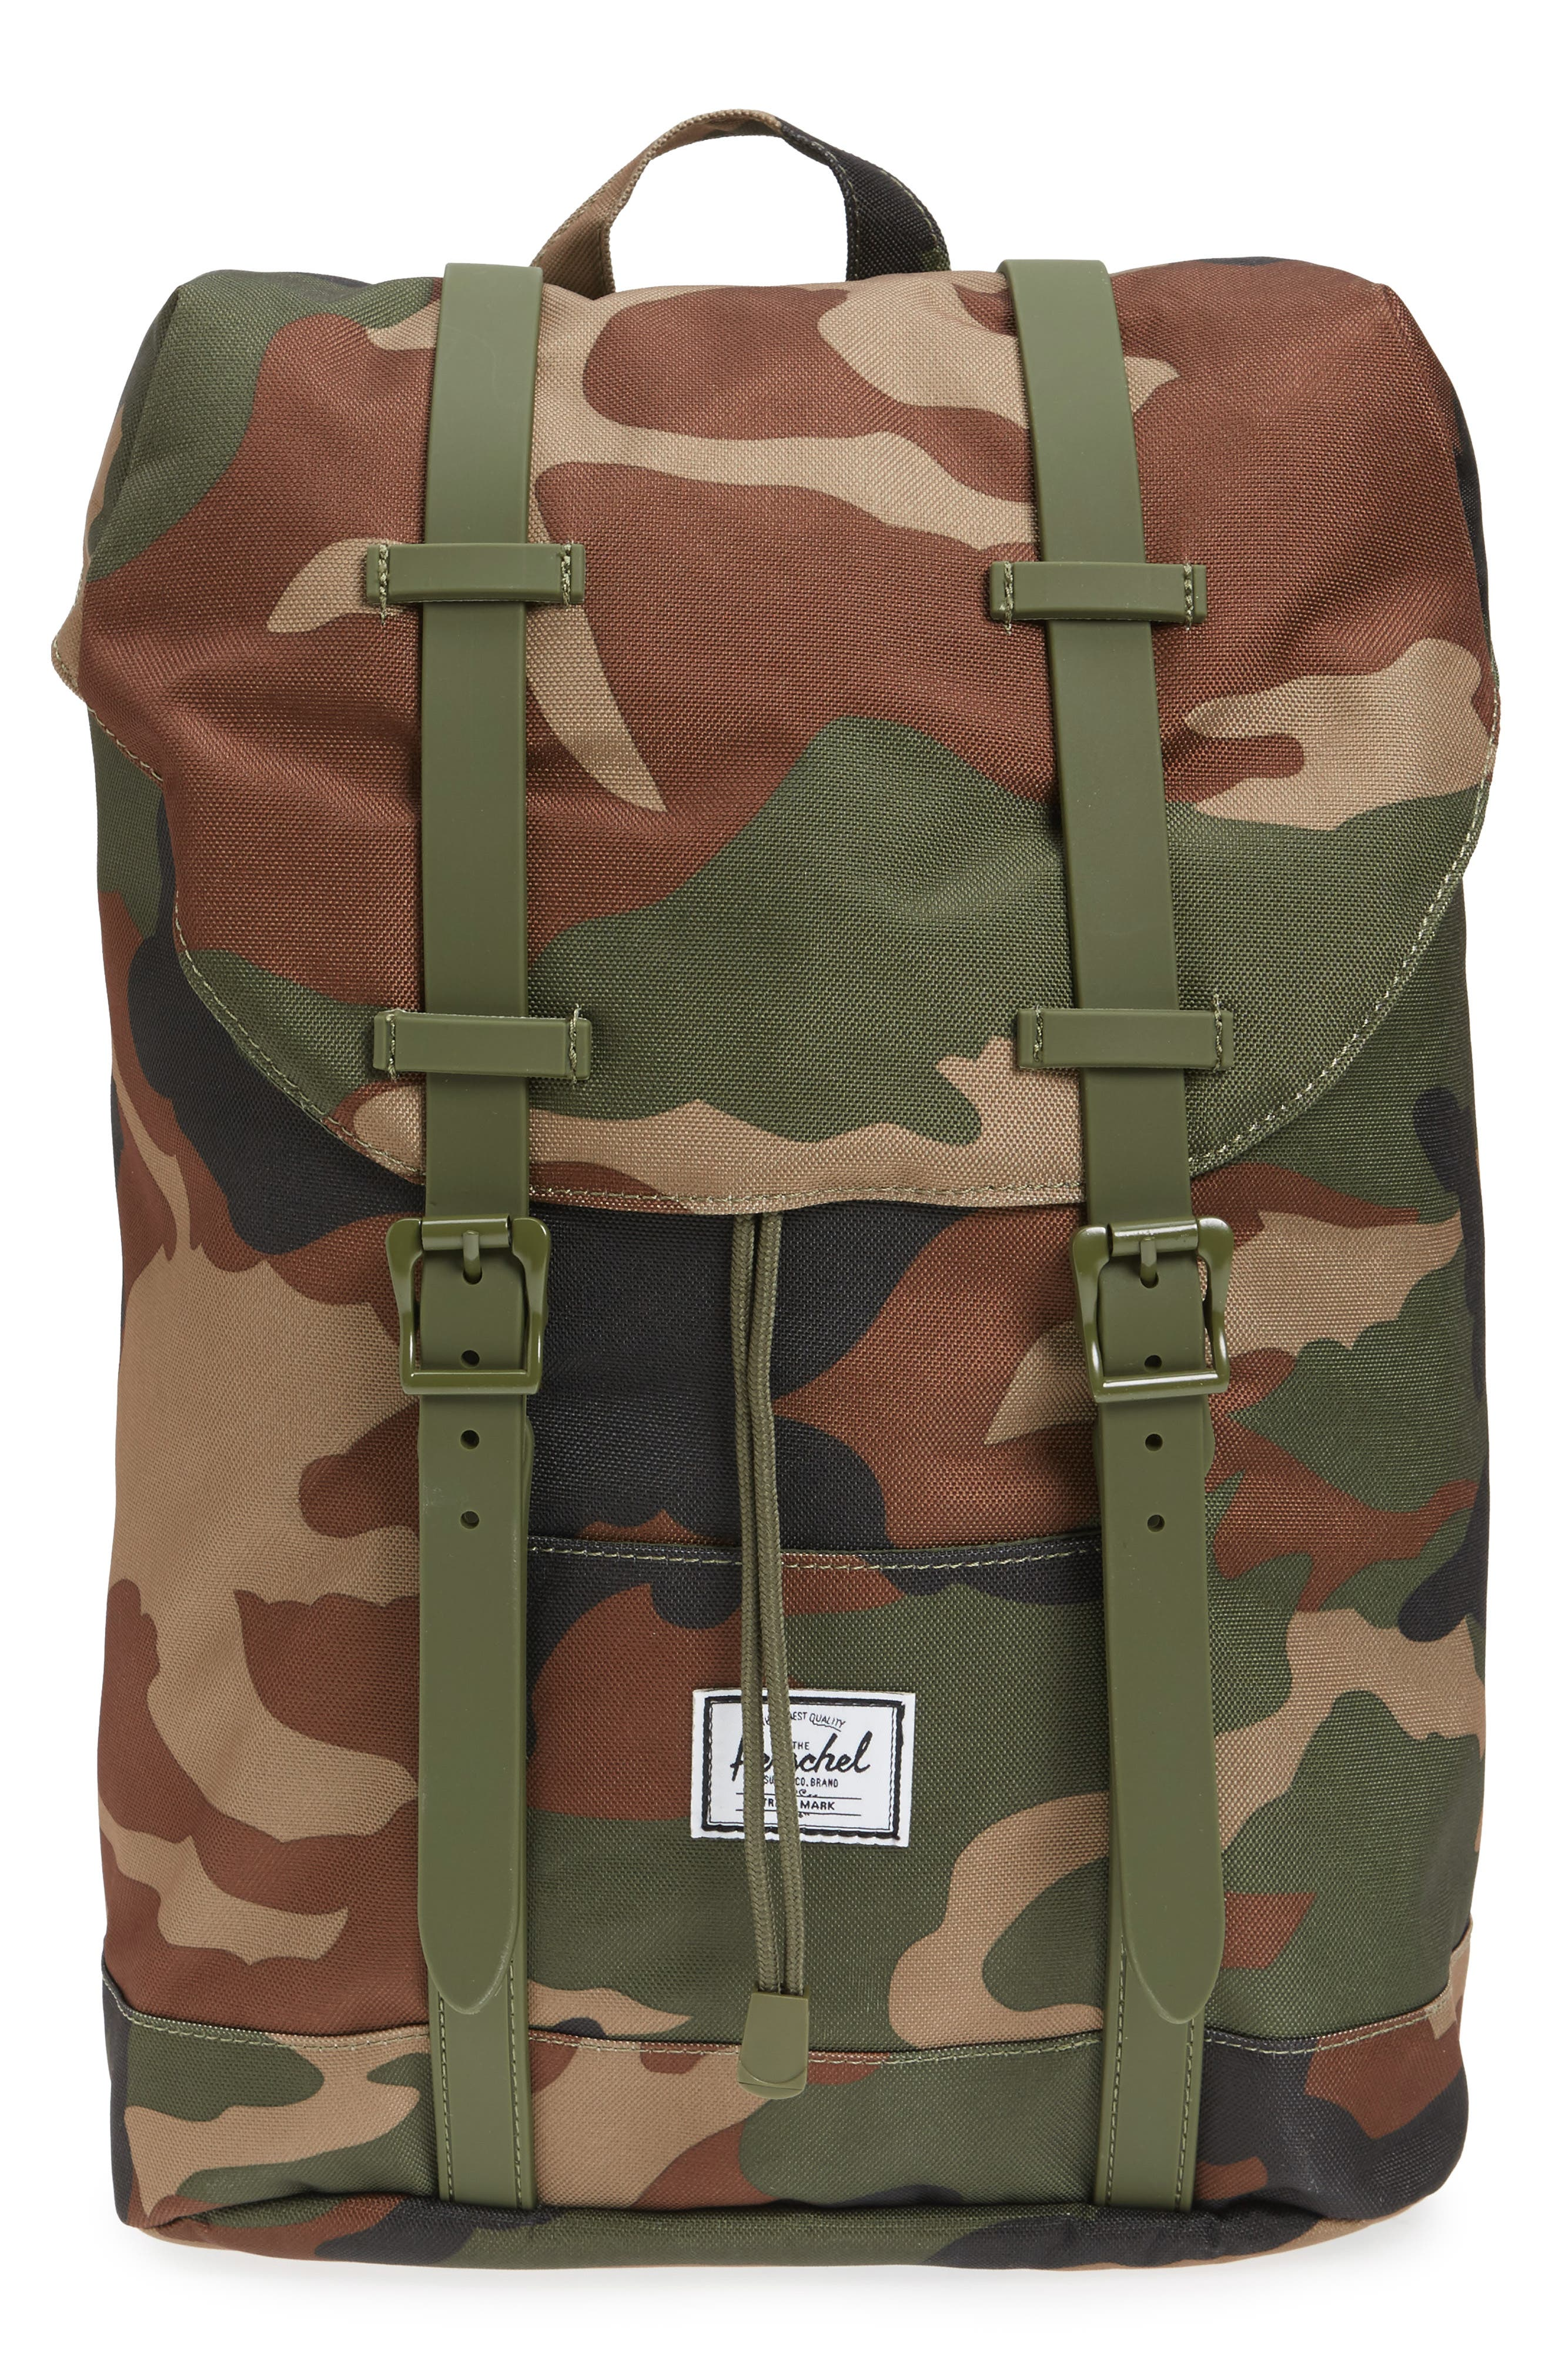 Retreat Camo Backpack,                         Main,                         color, 240